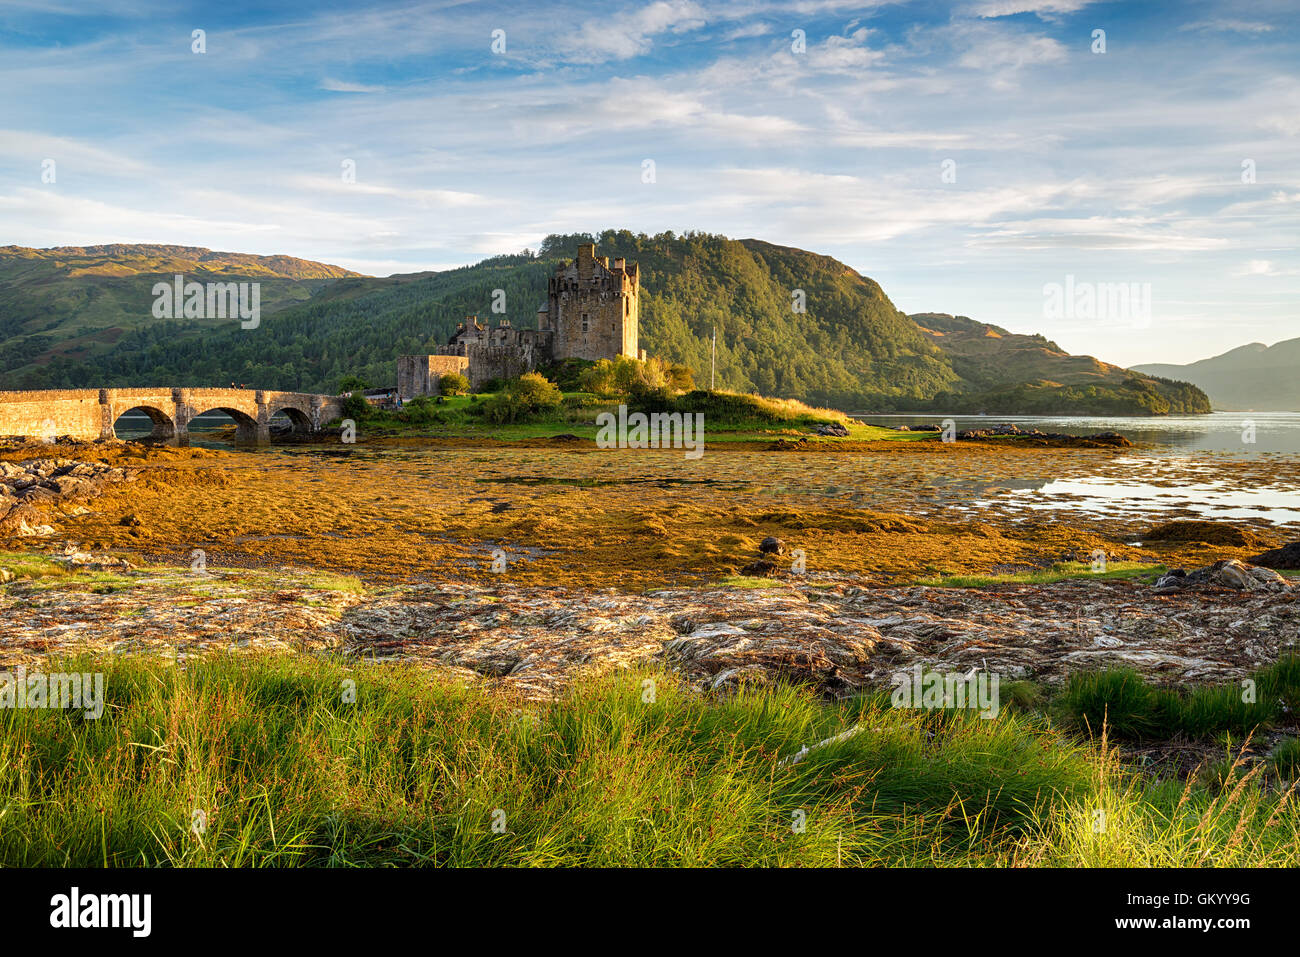 Evening sunlight on the castle at Eilean Donan in the Western Highlands of Scotland - Stock Image